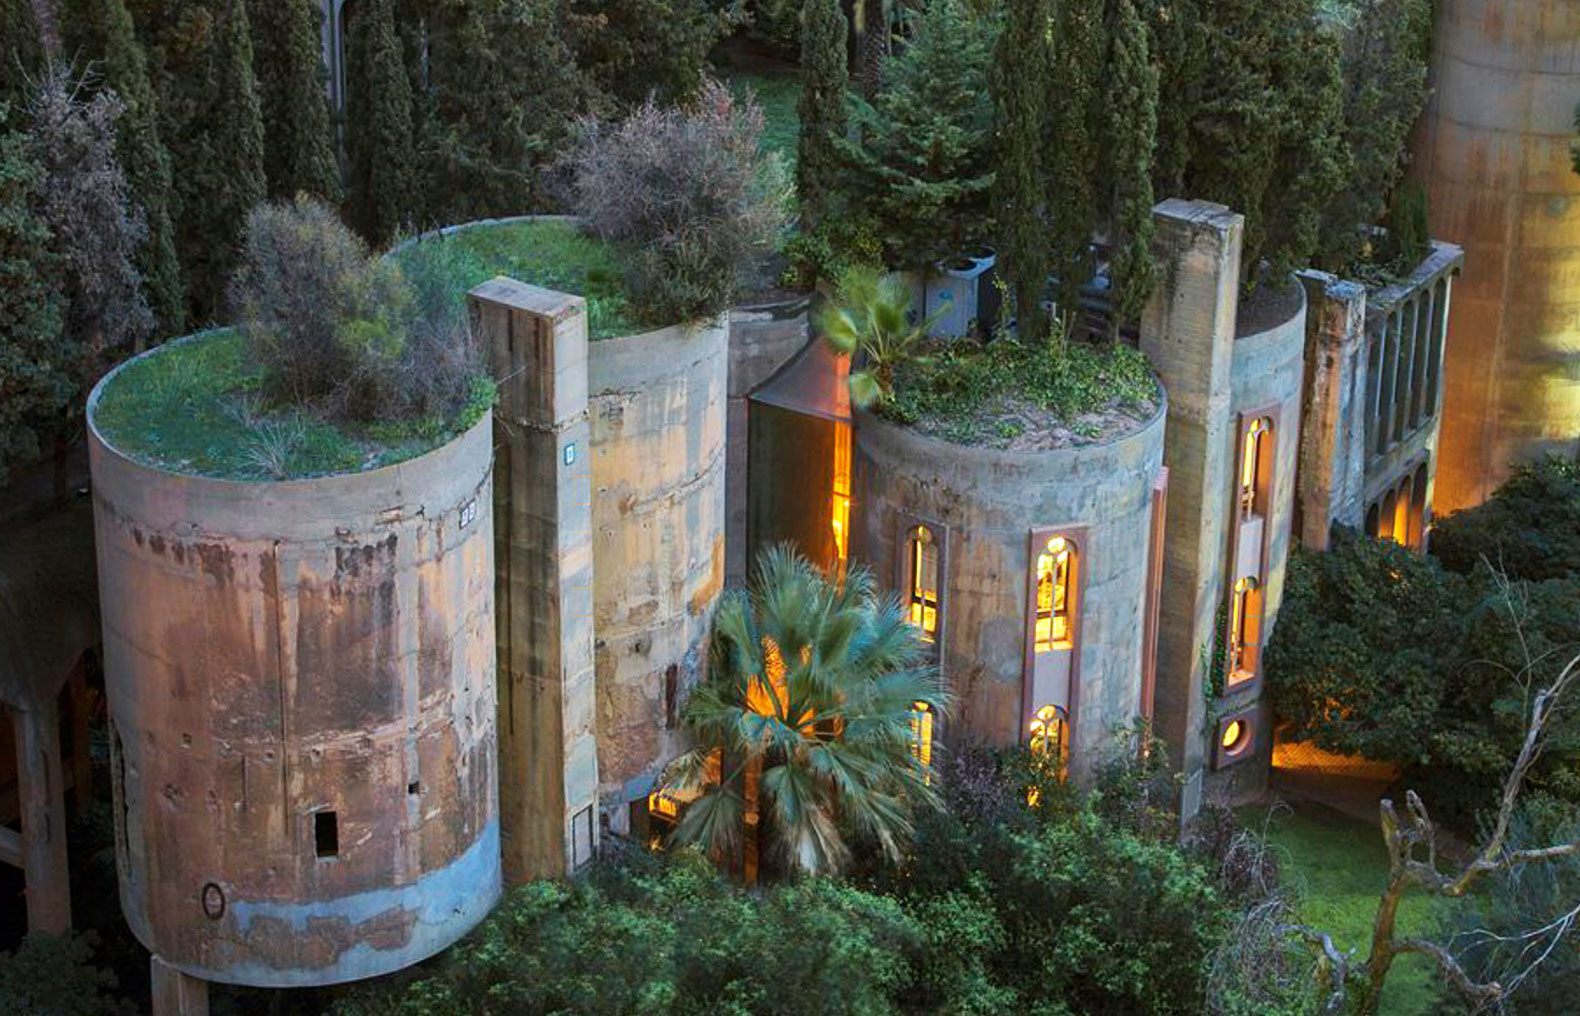 Architect turns old cement factory into incredible fairytale home - and the interior will blow you away